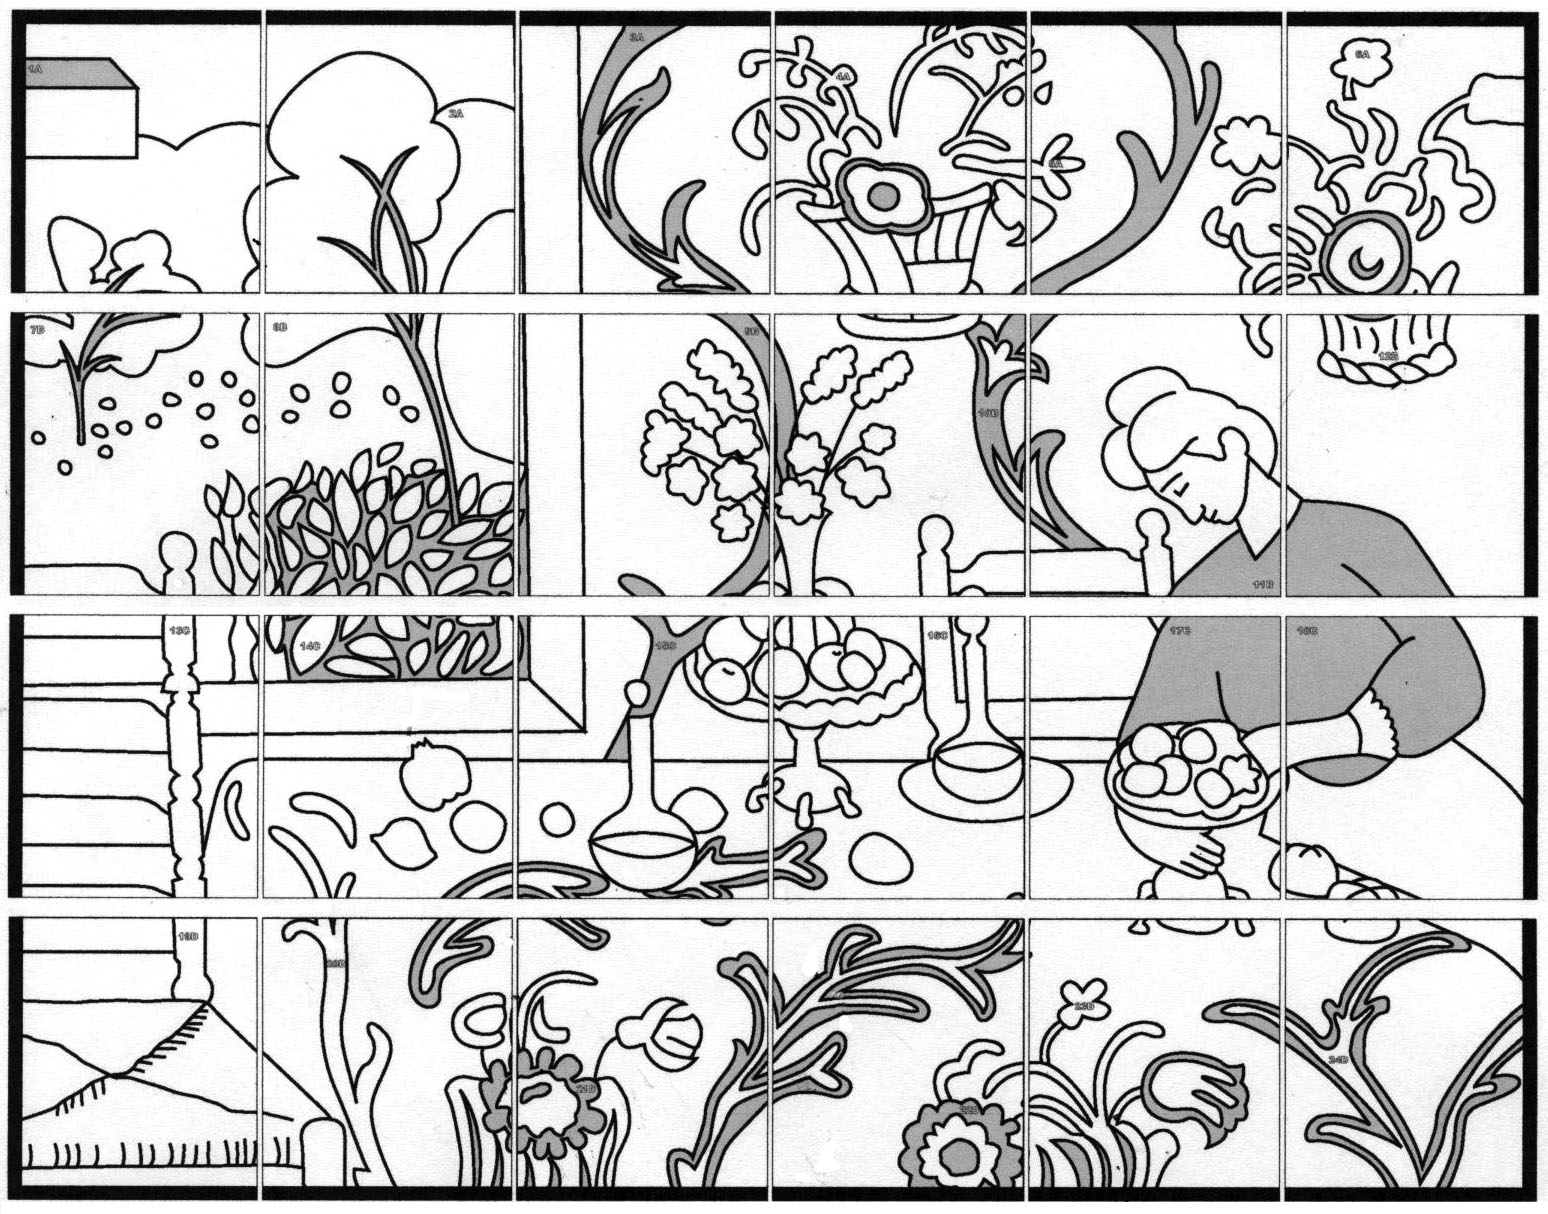 d arte mural coloring pages - photo#2